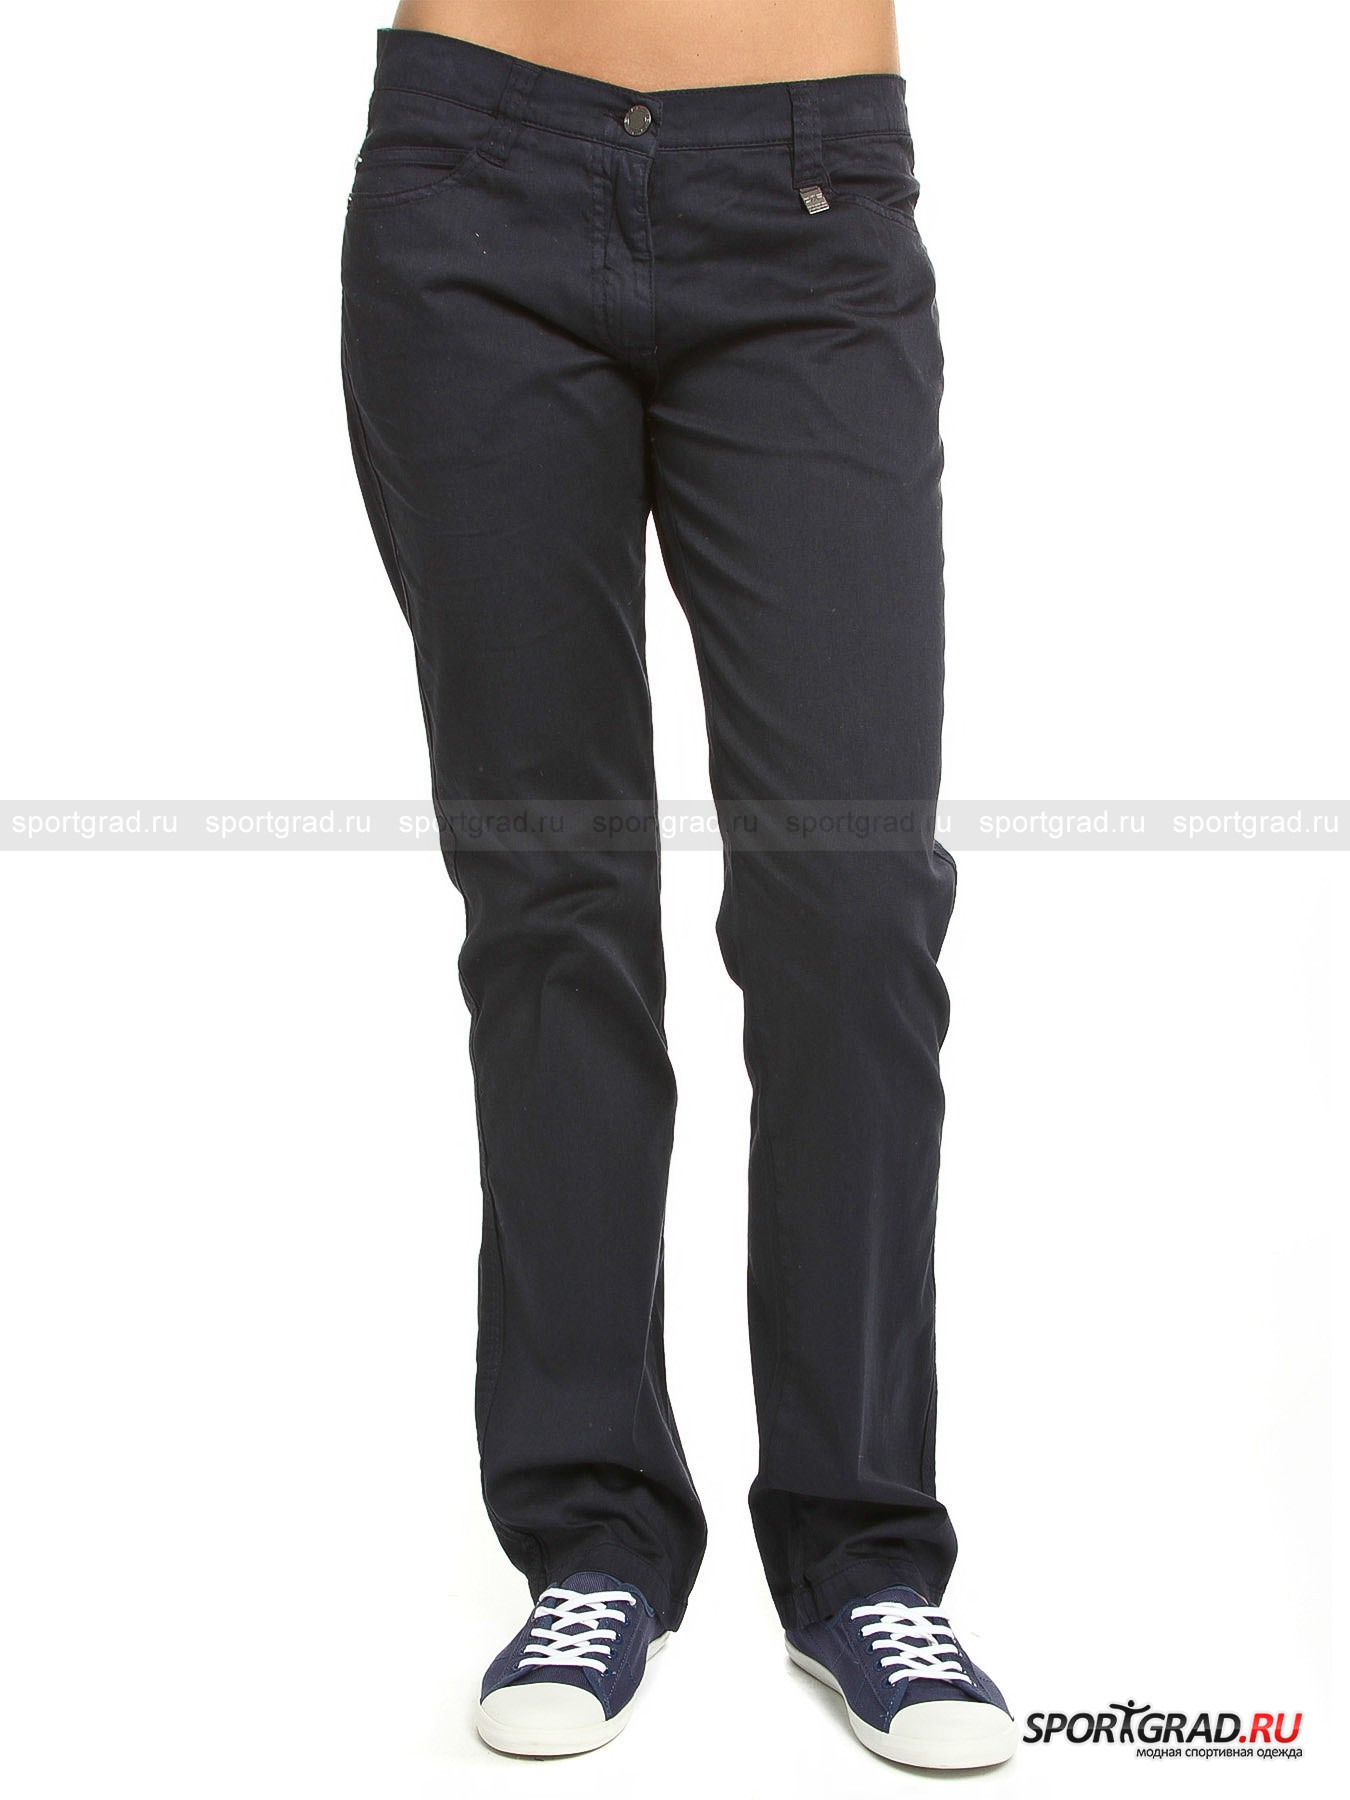 Брюки женские хлопковые  LADY LONG PANT TWILL STRETCH CAMPAGNOLO